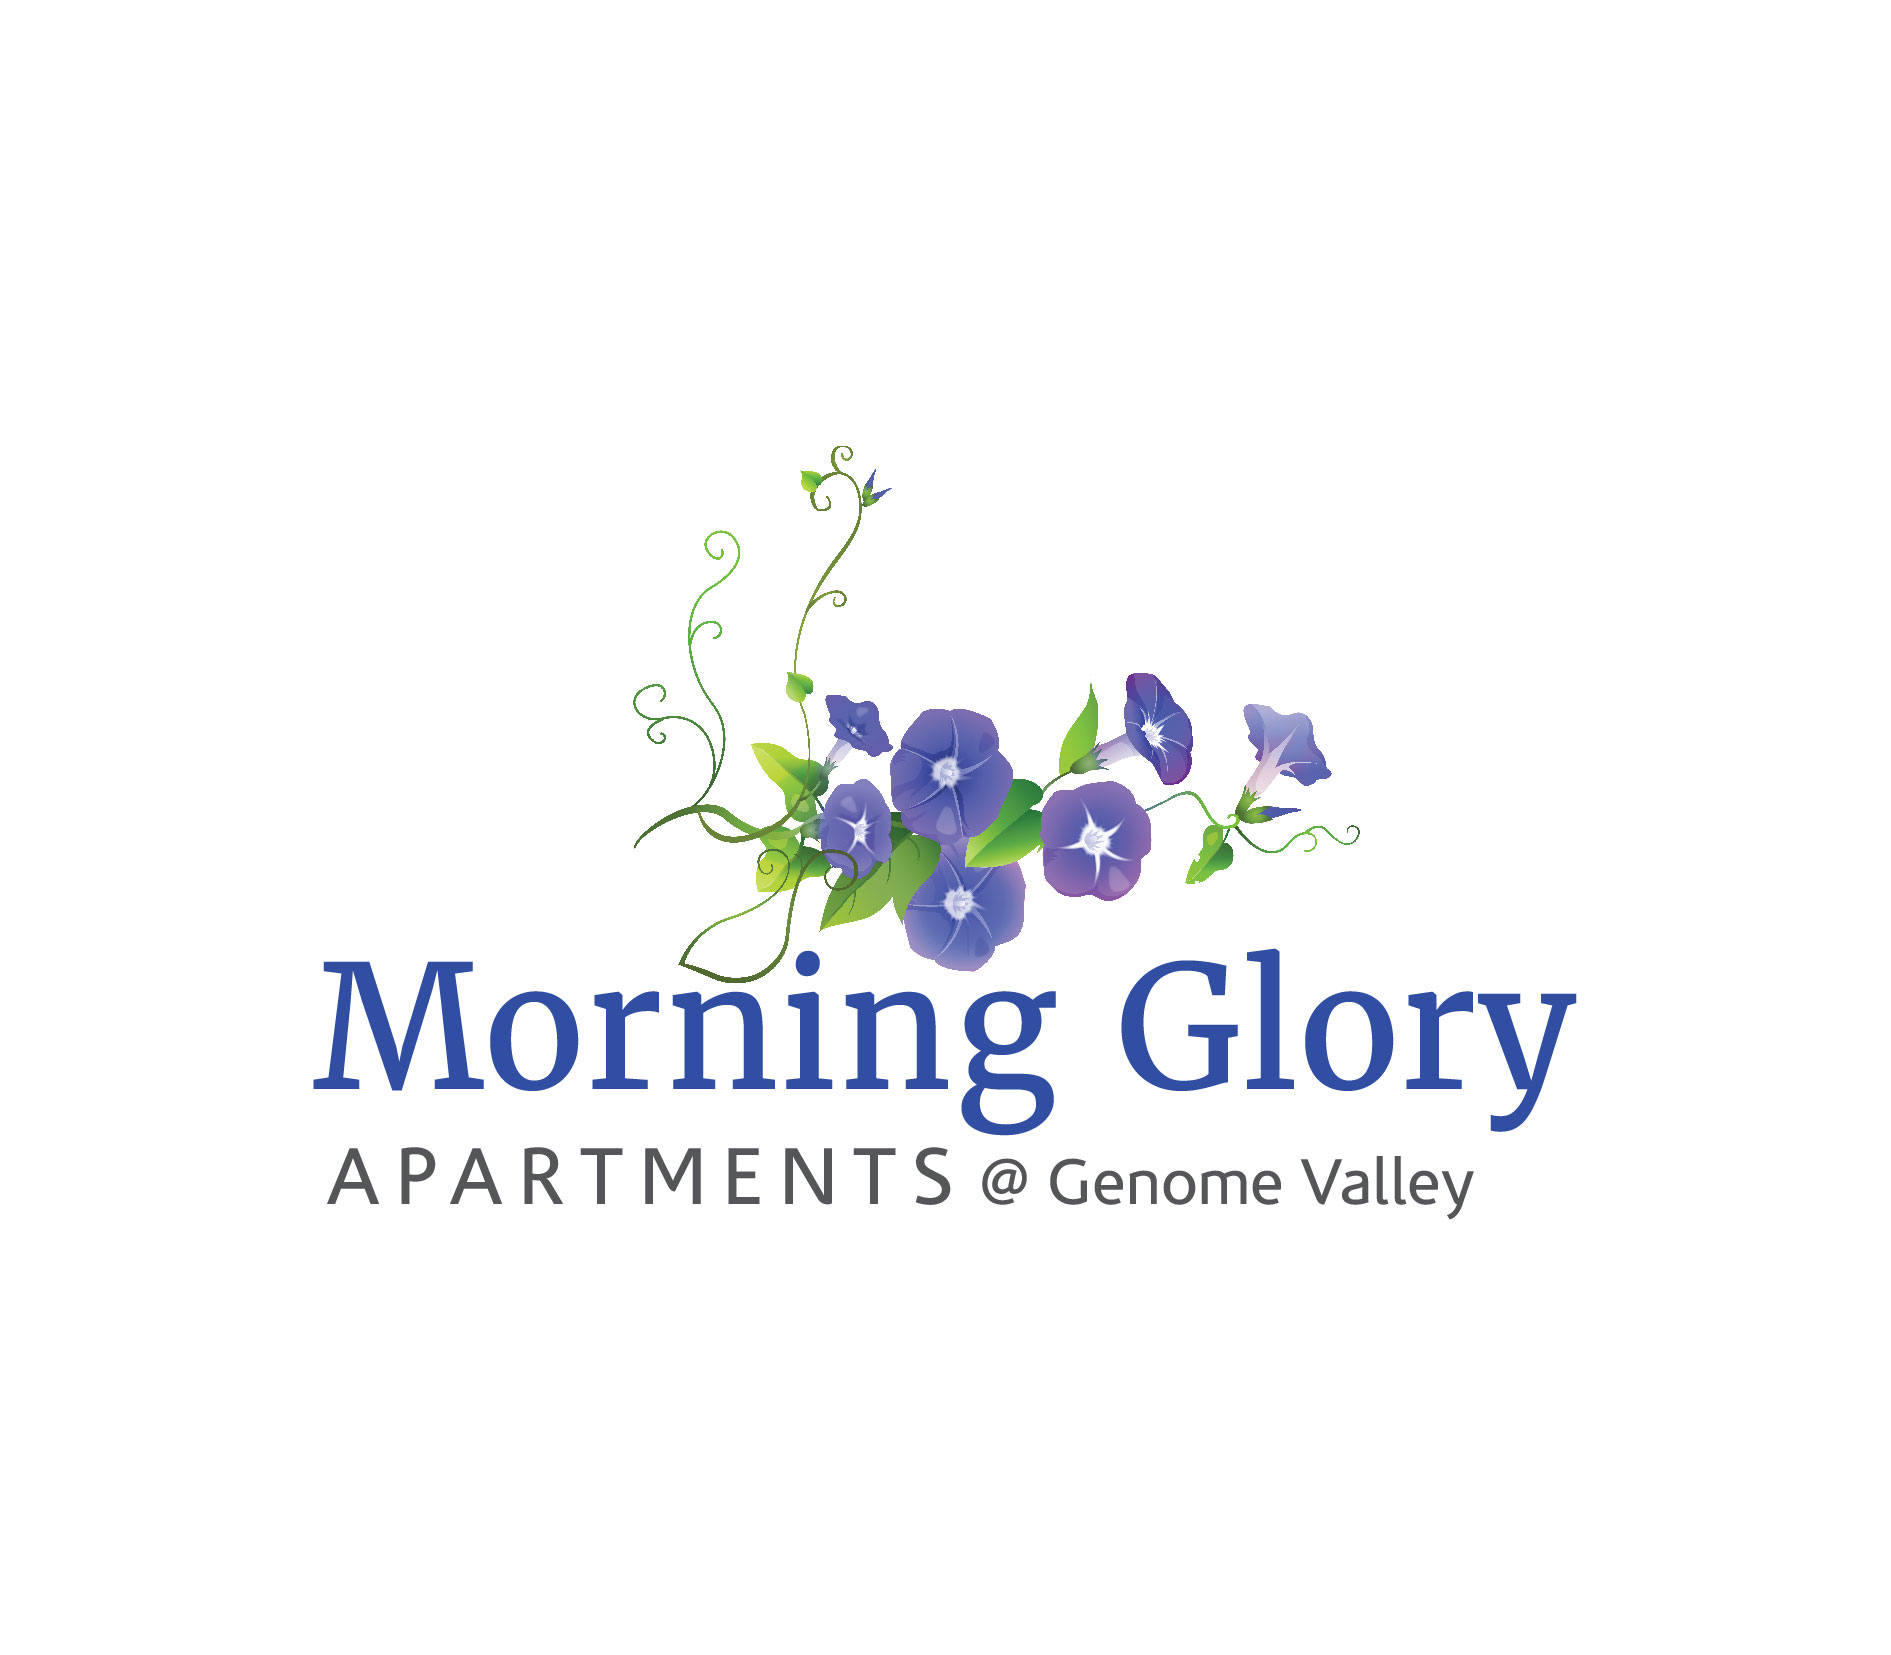 Morning Glory Apartments